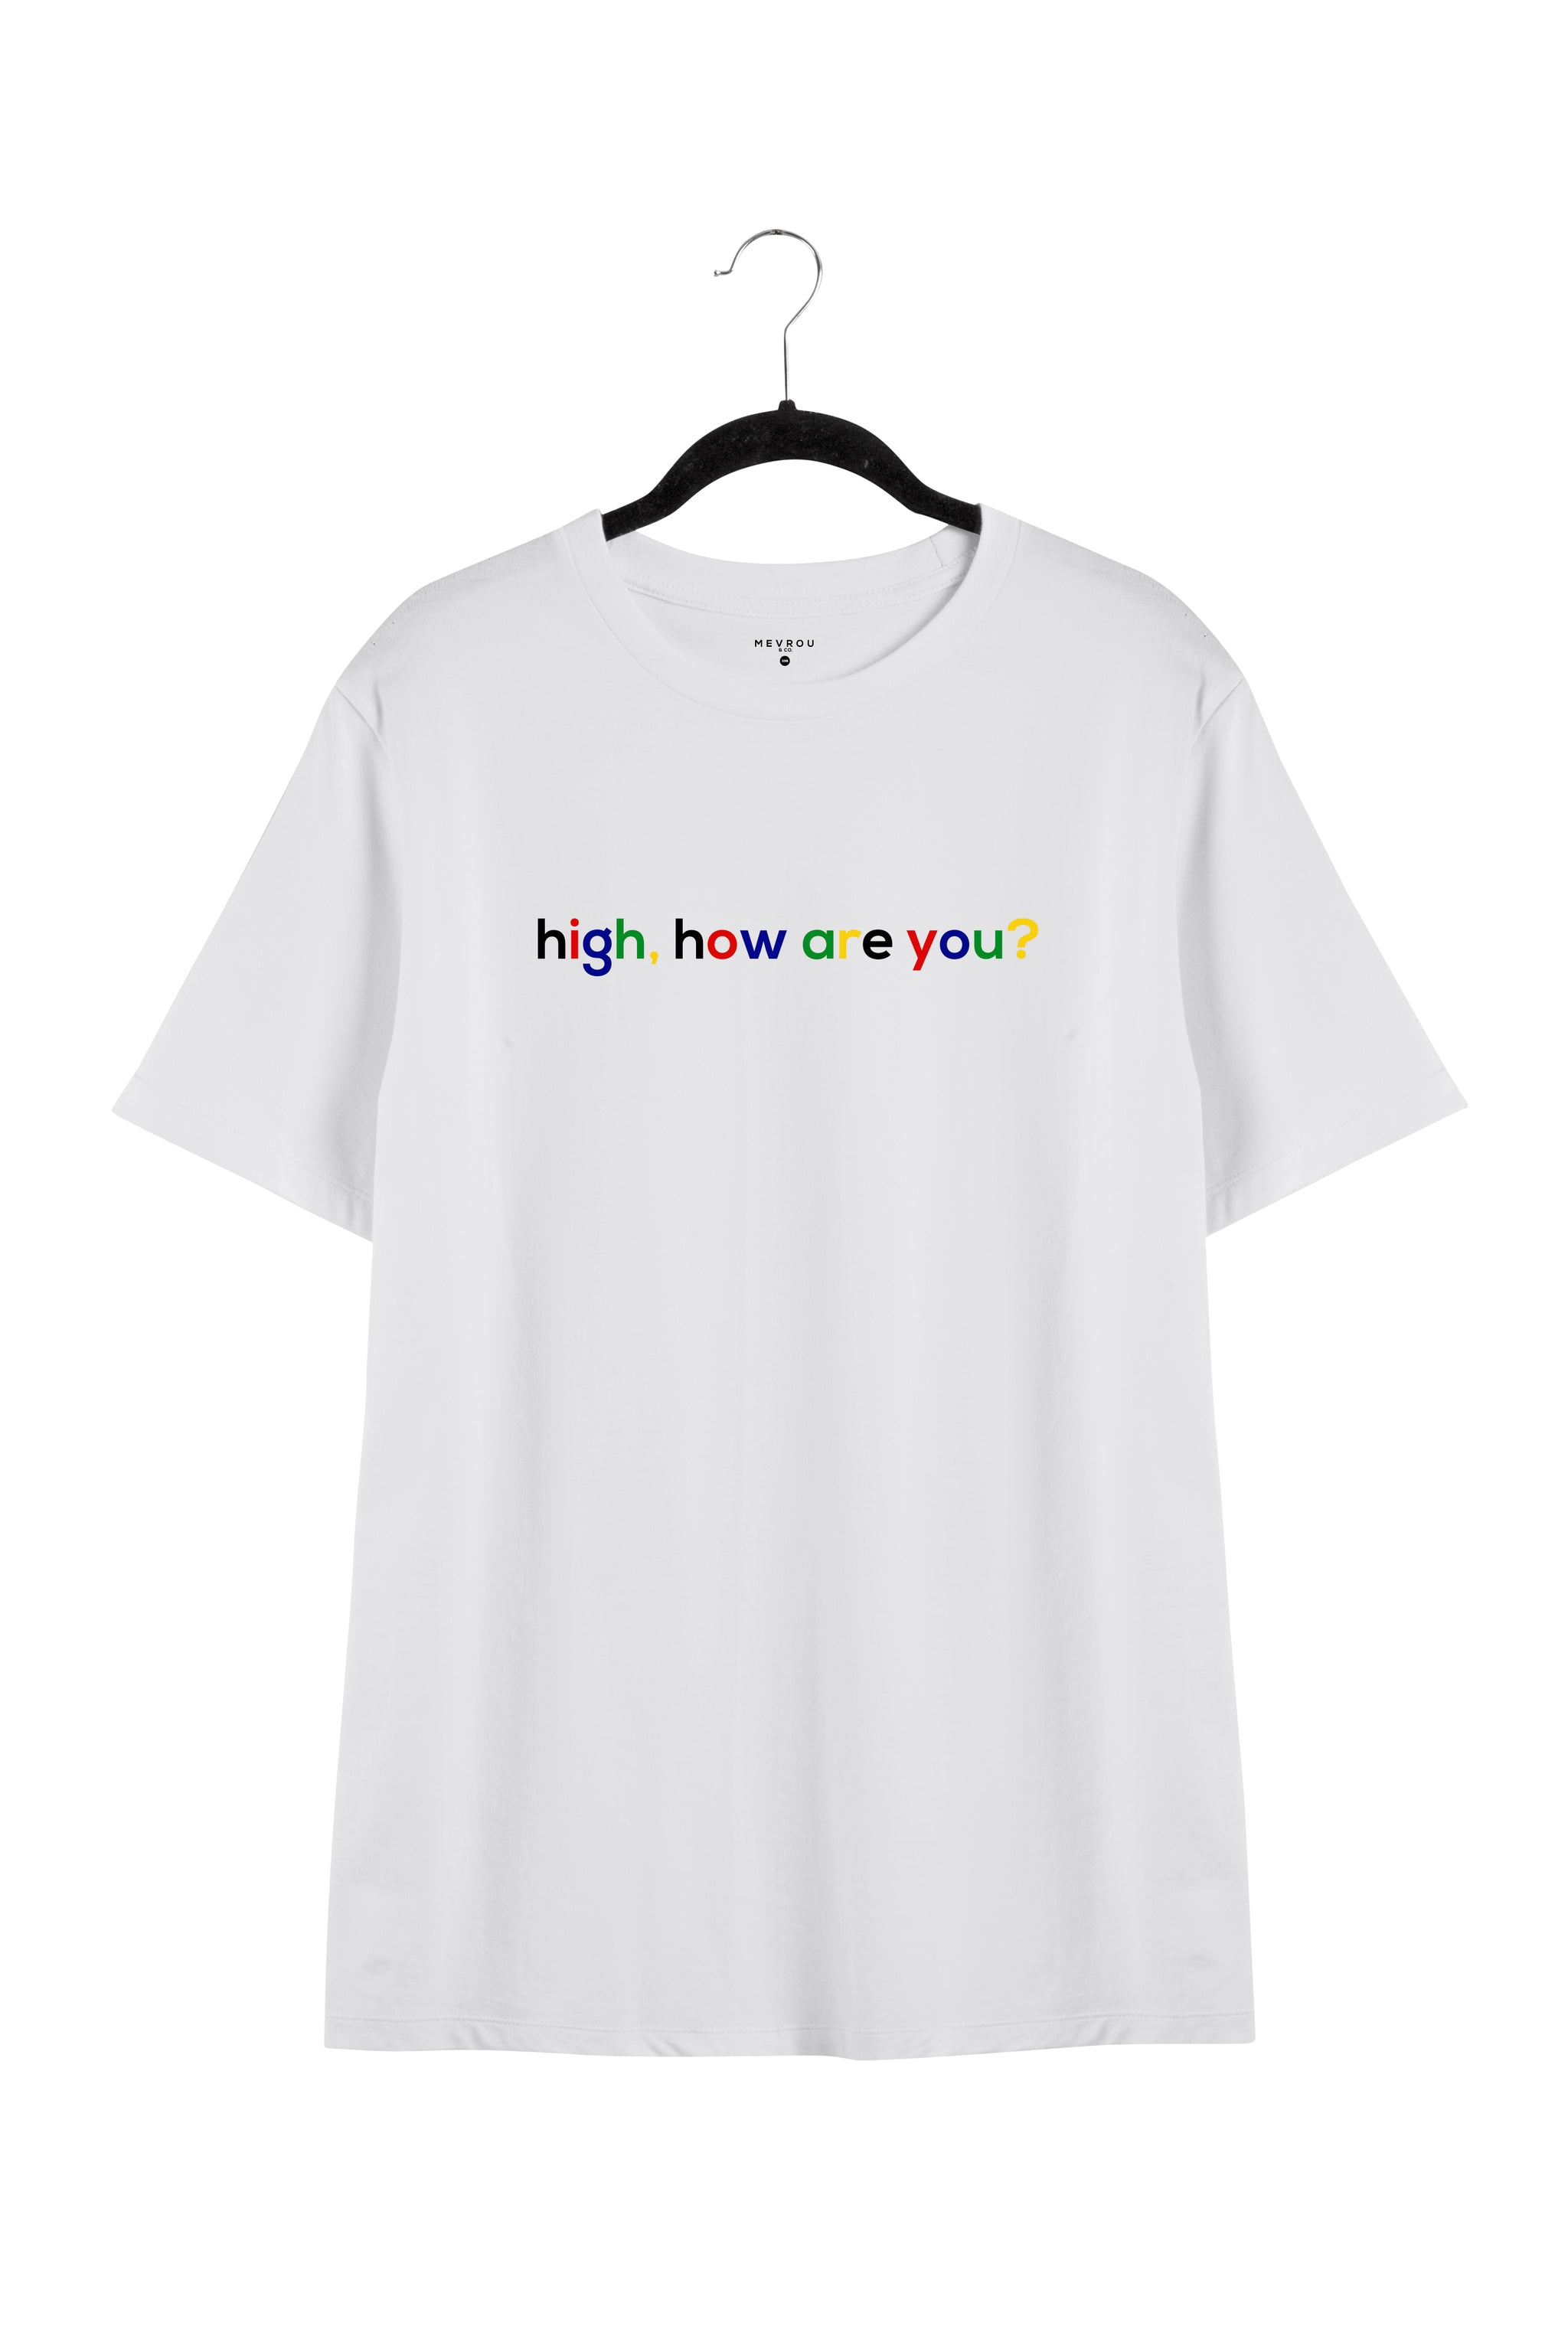 HIGH, HOW ARE YOU? TEE